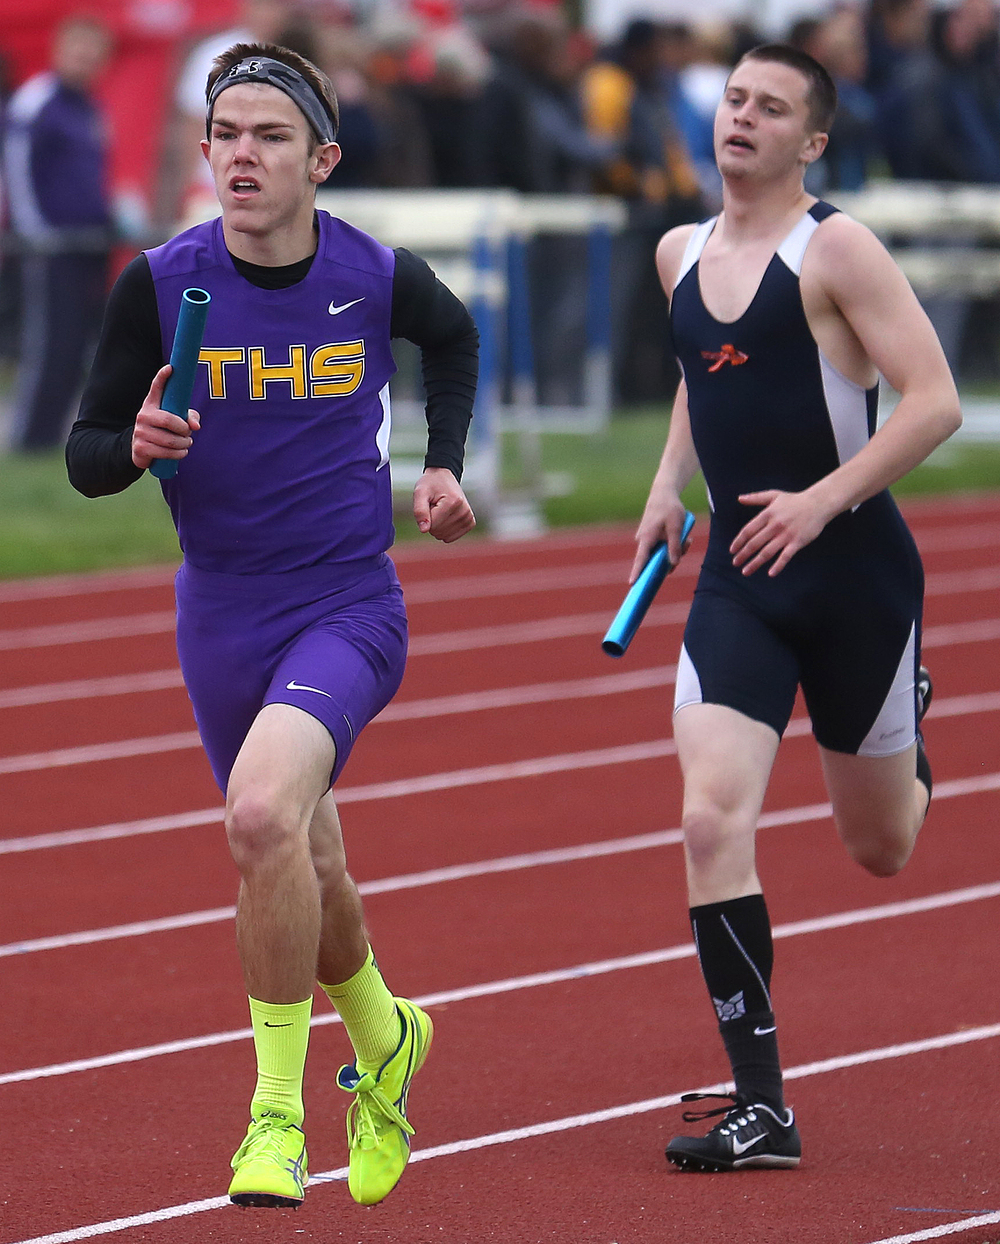 The boys 4 x 800 meter relay event was won by Taylorville. Here, Tommy O'Brien, in front of Pontiac's Alex Sennott, prepares to hand the baton to teammate Will Walton who ran the final leg. David Spencer/The State Journal-Register